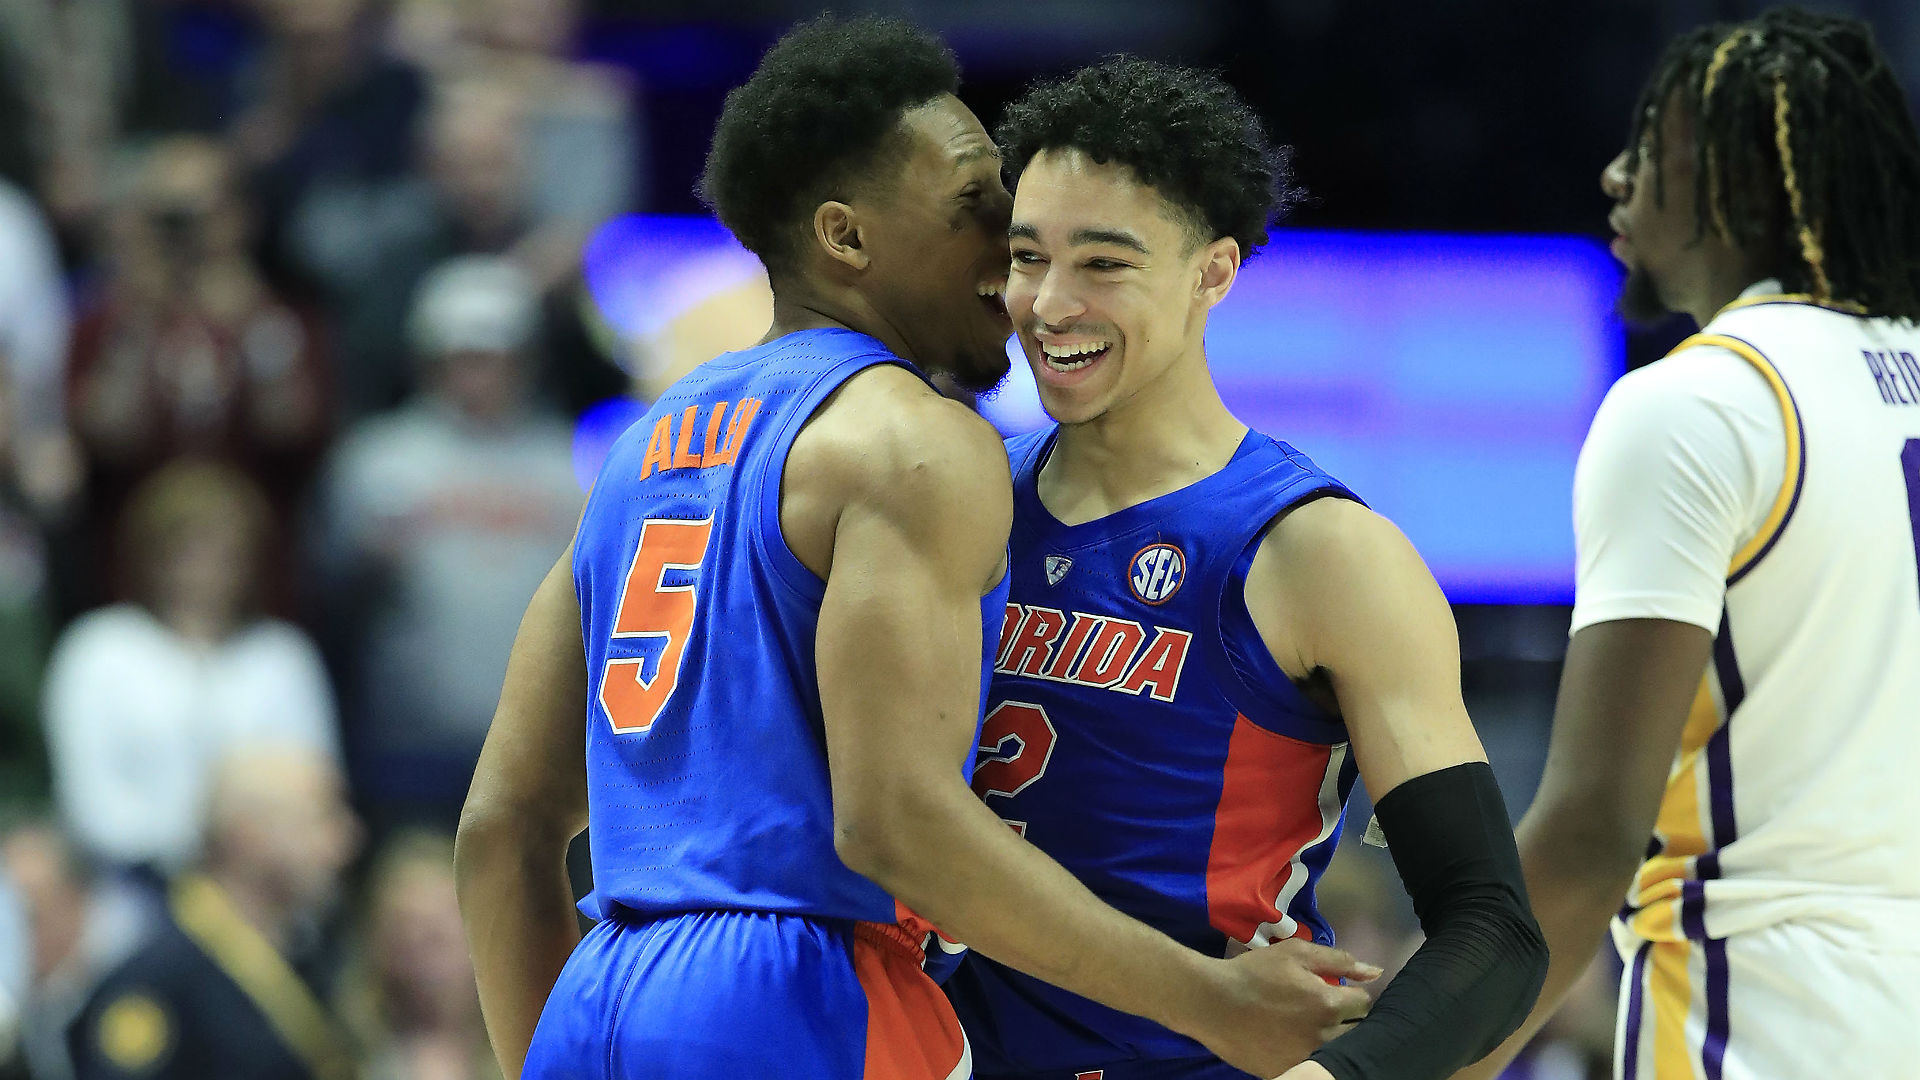 March Madness 2019 3 Takeaways From Duke S Win Over: 3 Takeaways From Florida's SEC Tournament Upset Of LSU